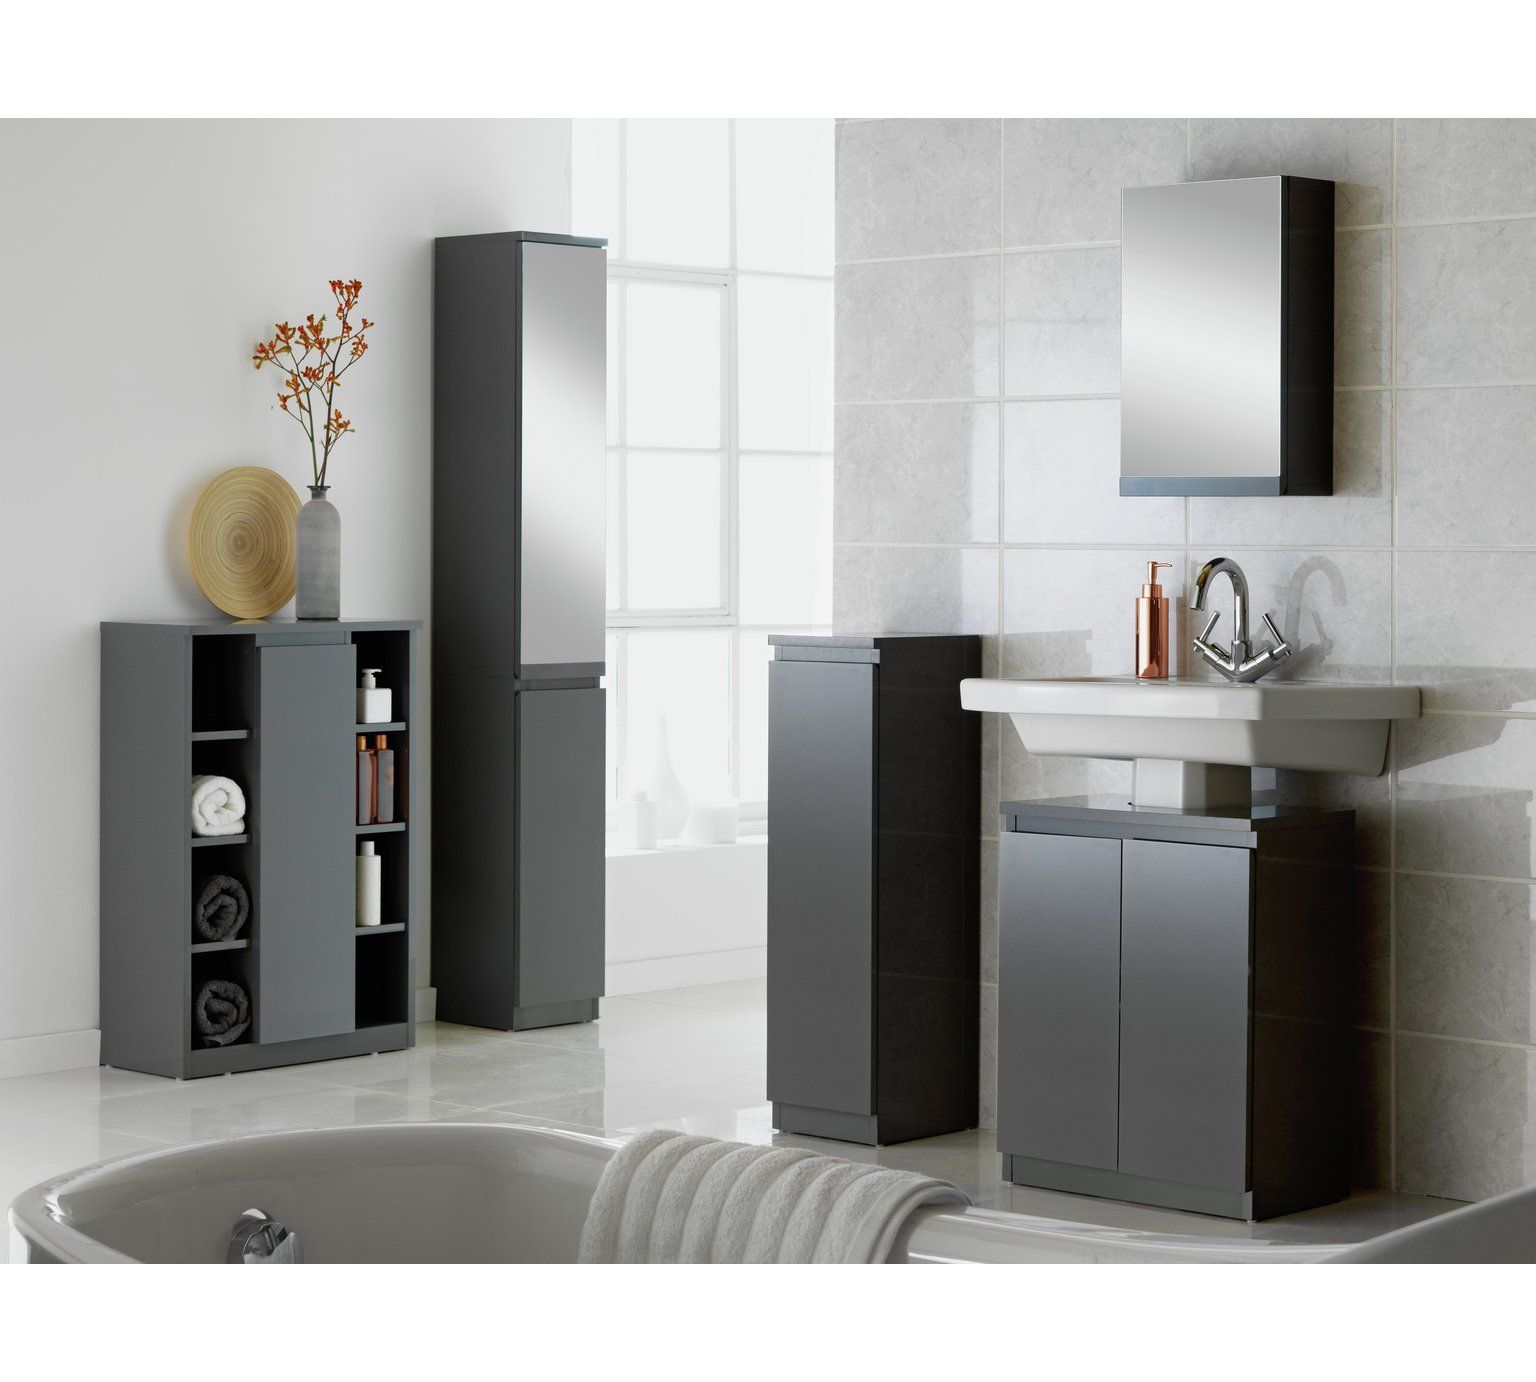 Buy Hygena Gloss Mirrored Tall Bathroom Storage Cabinet Grey At Argos Co Uk Visit Argos Tall Bathroom Storage Grey Bathroom Furniture Grey Bathroom Cabinets